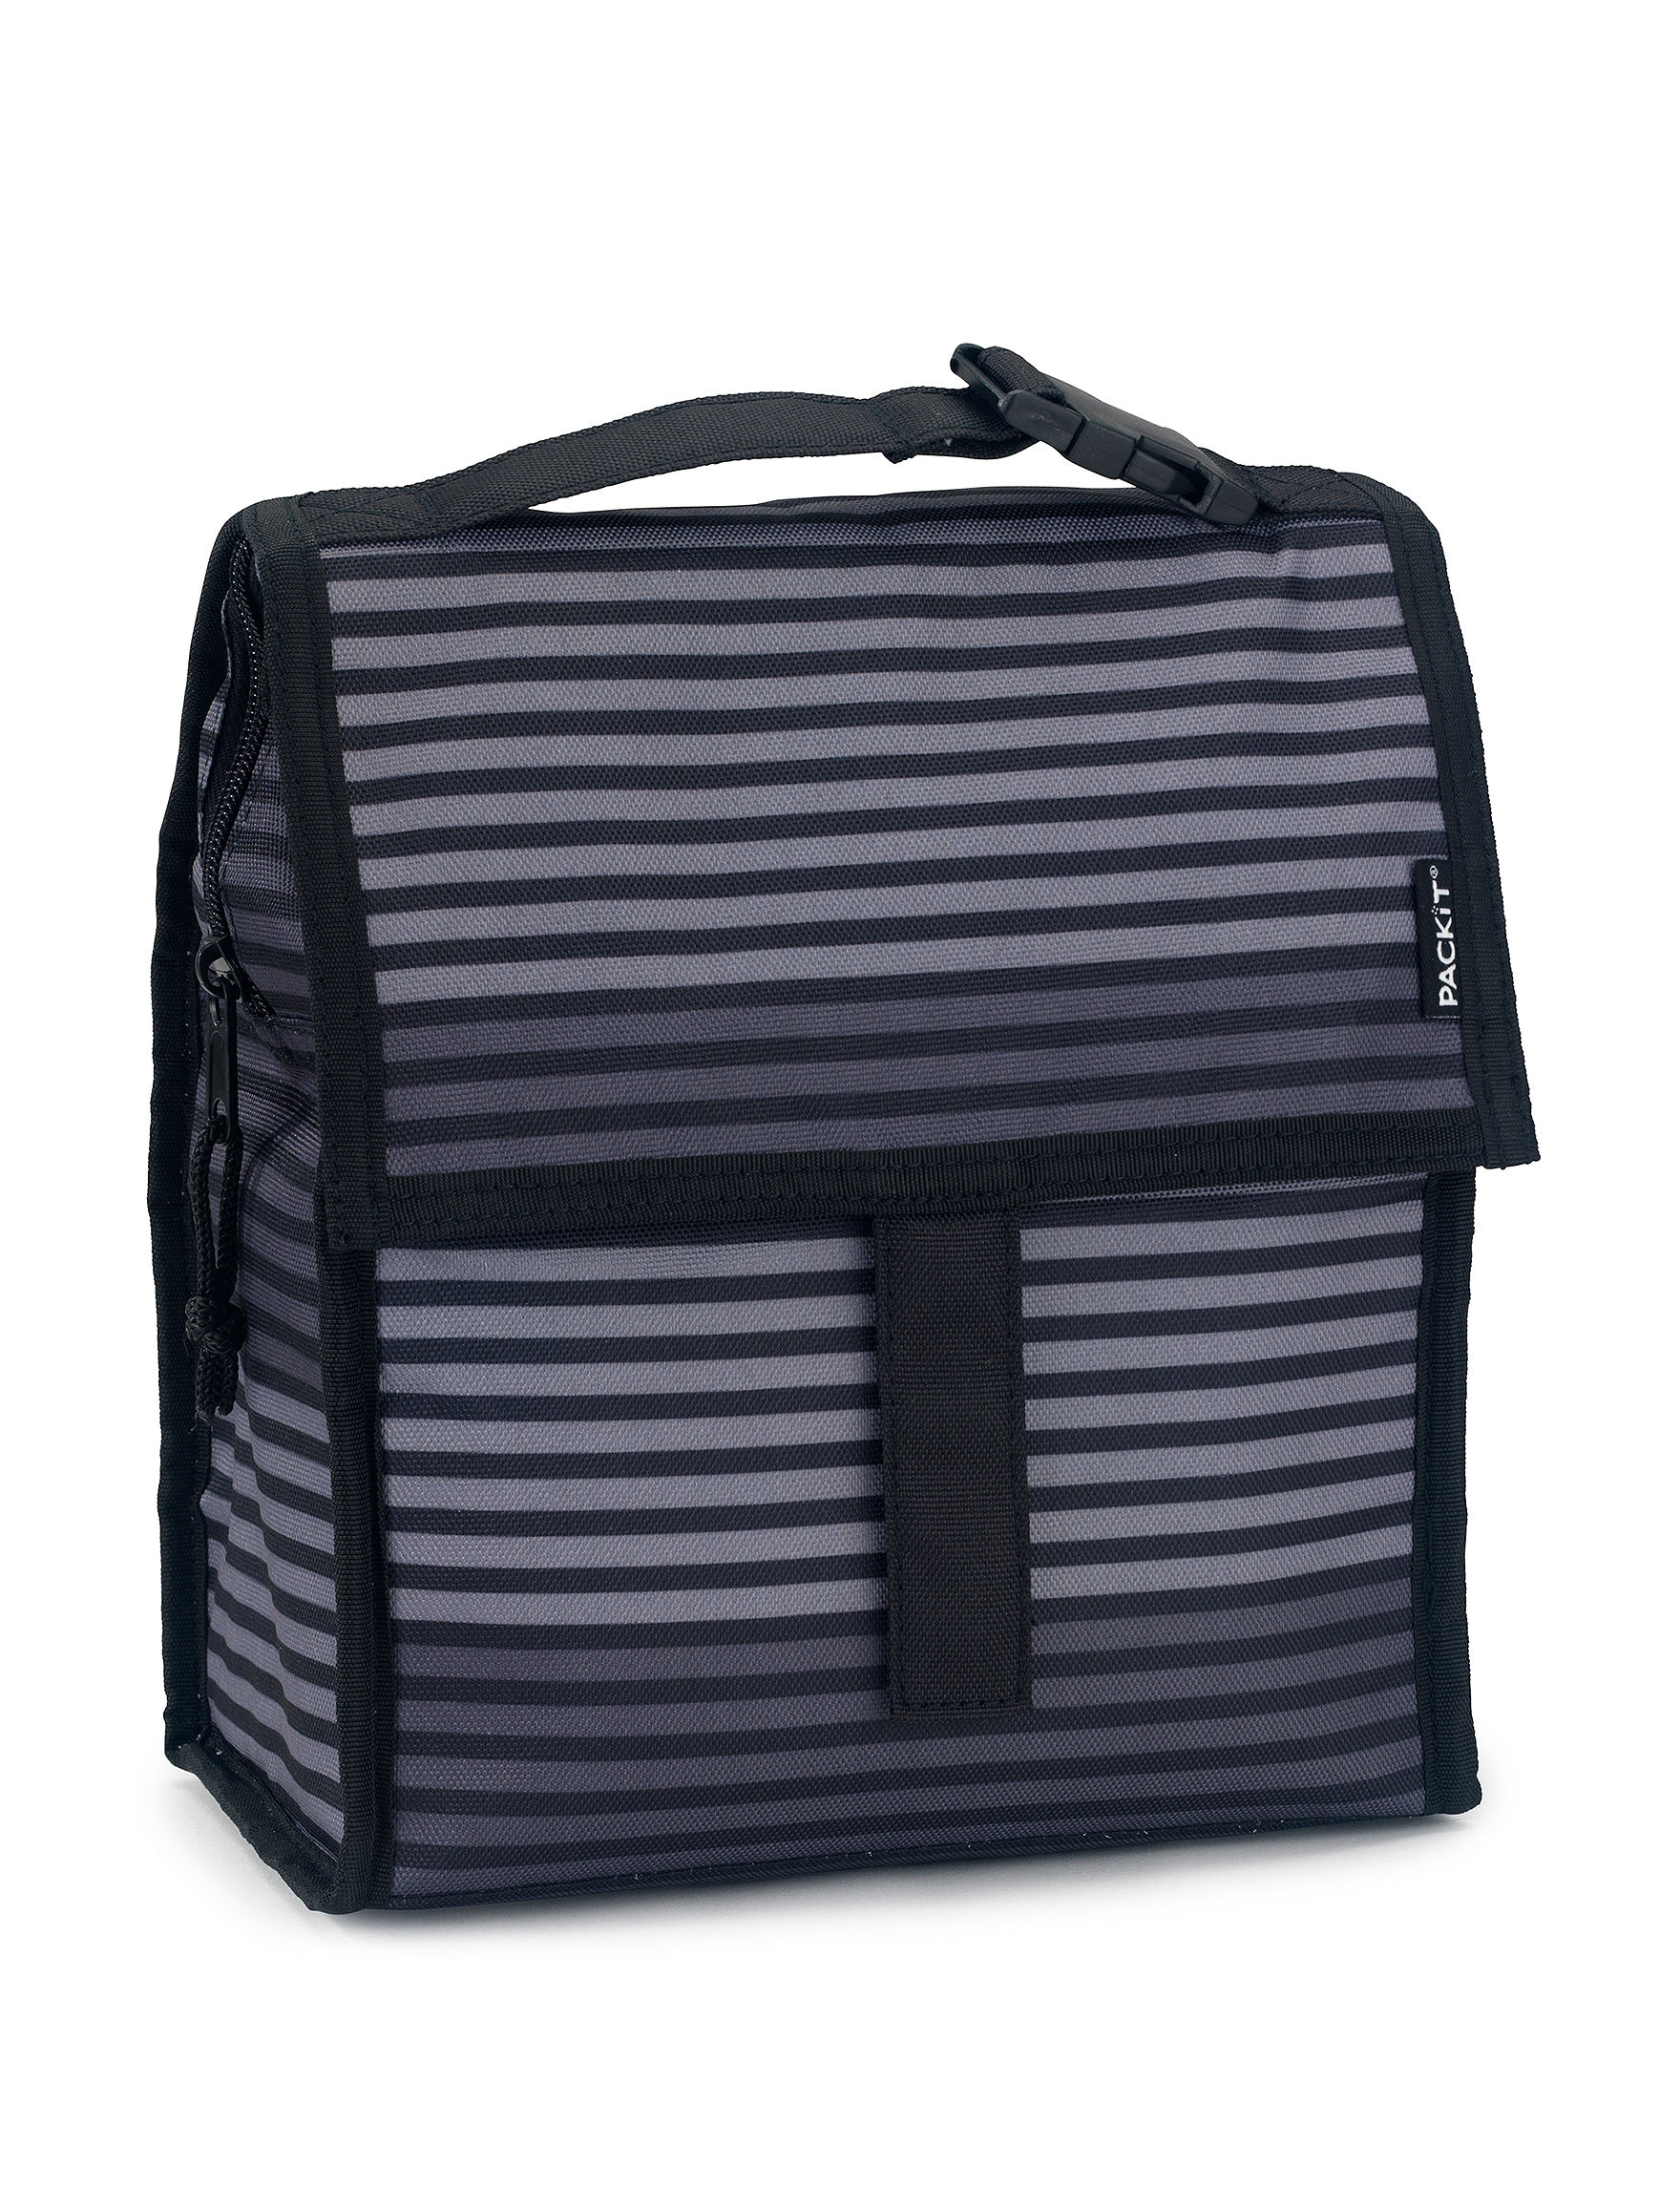 Pack It Grey Lunch Boxes & Bags Kitchen Storage & Organization